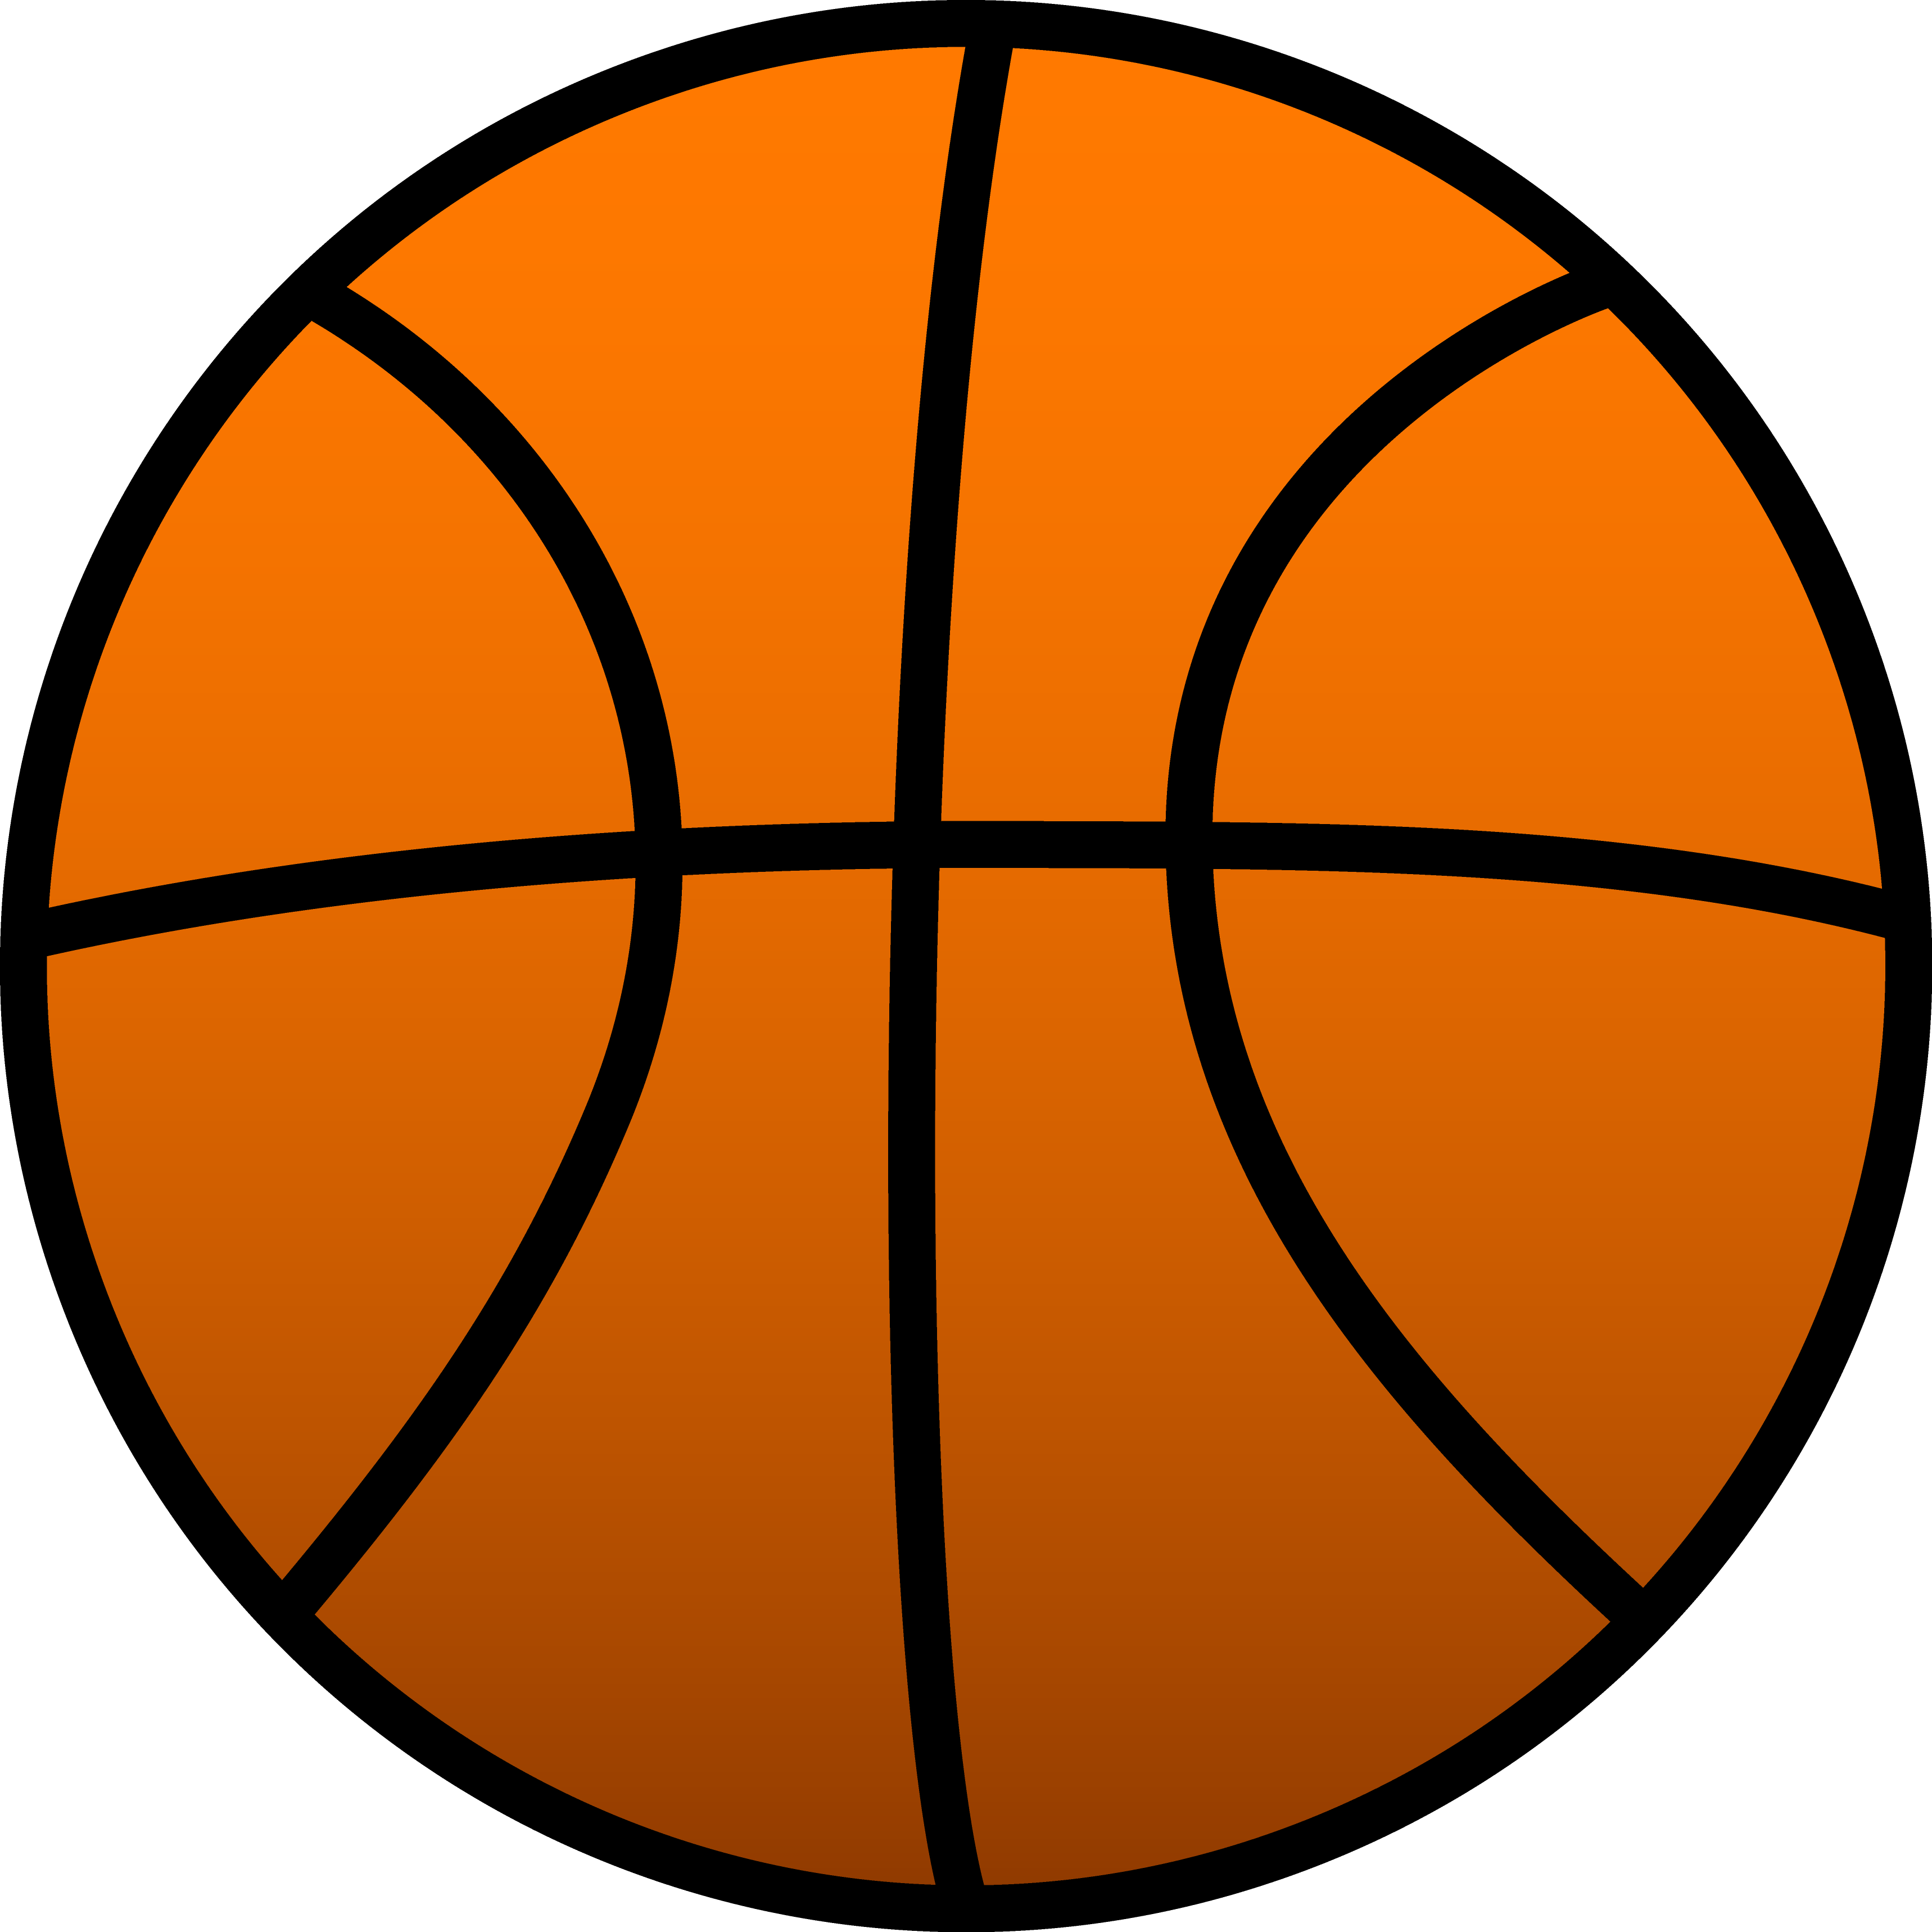 3437x3437 Ball Clipart Cartoon Basketball